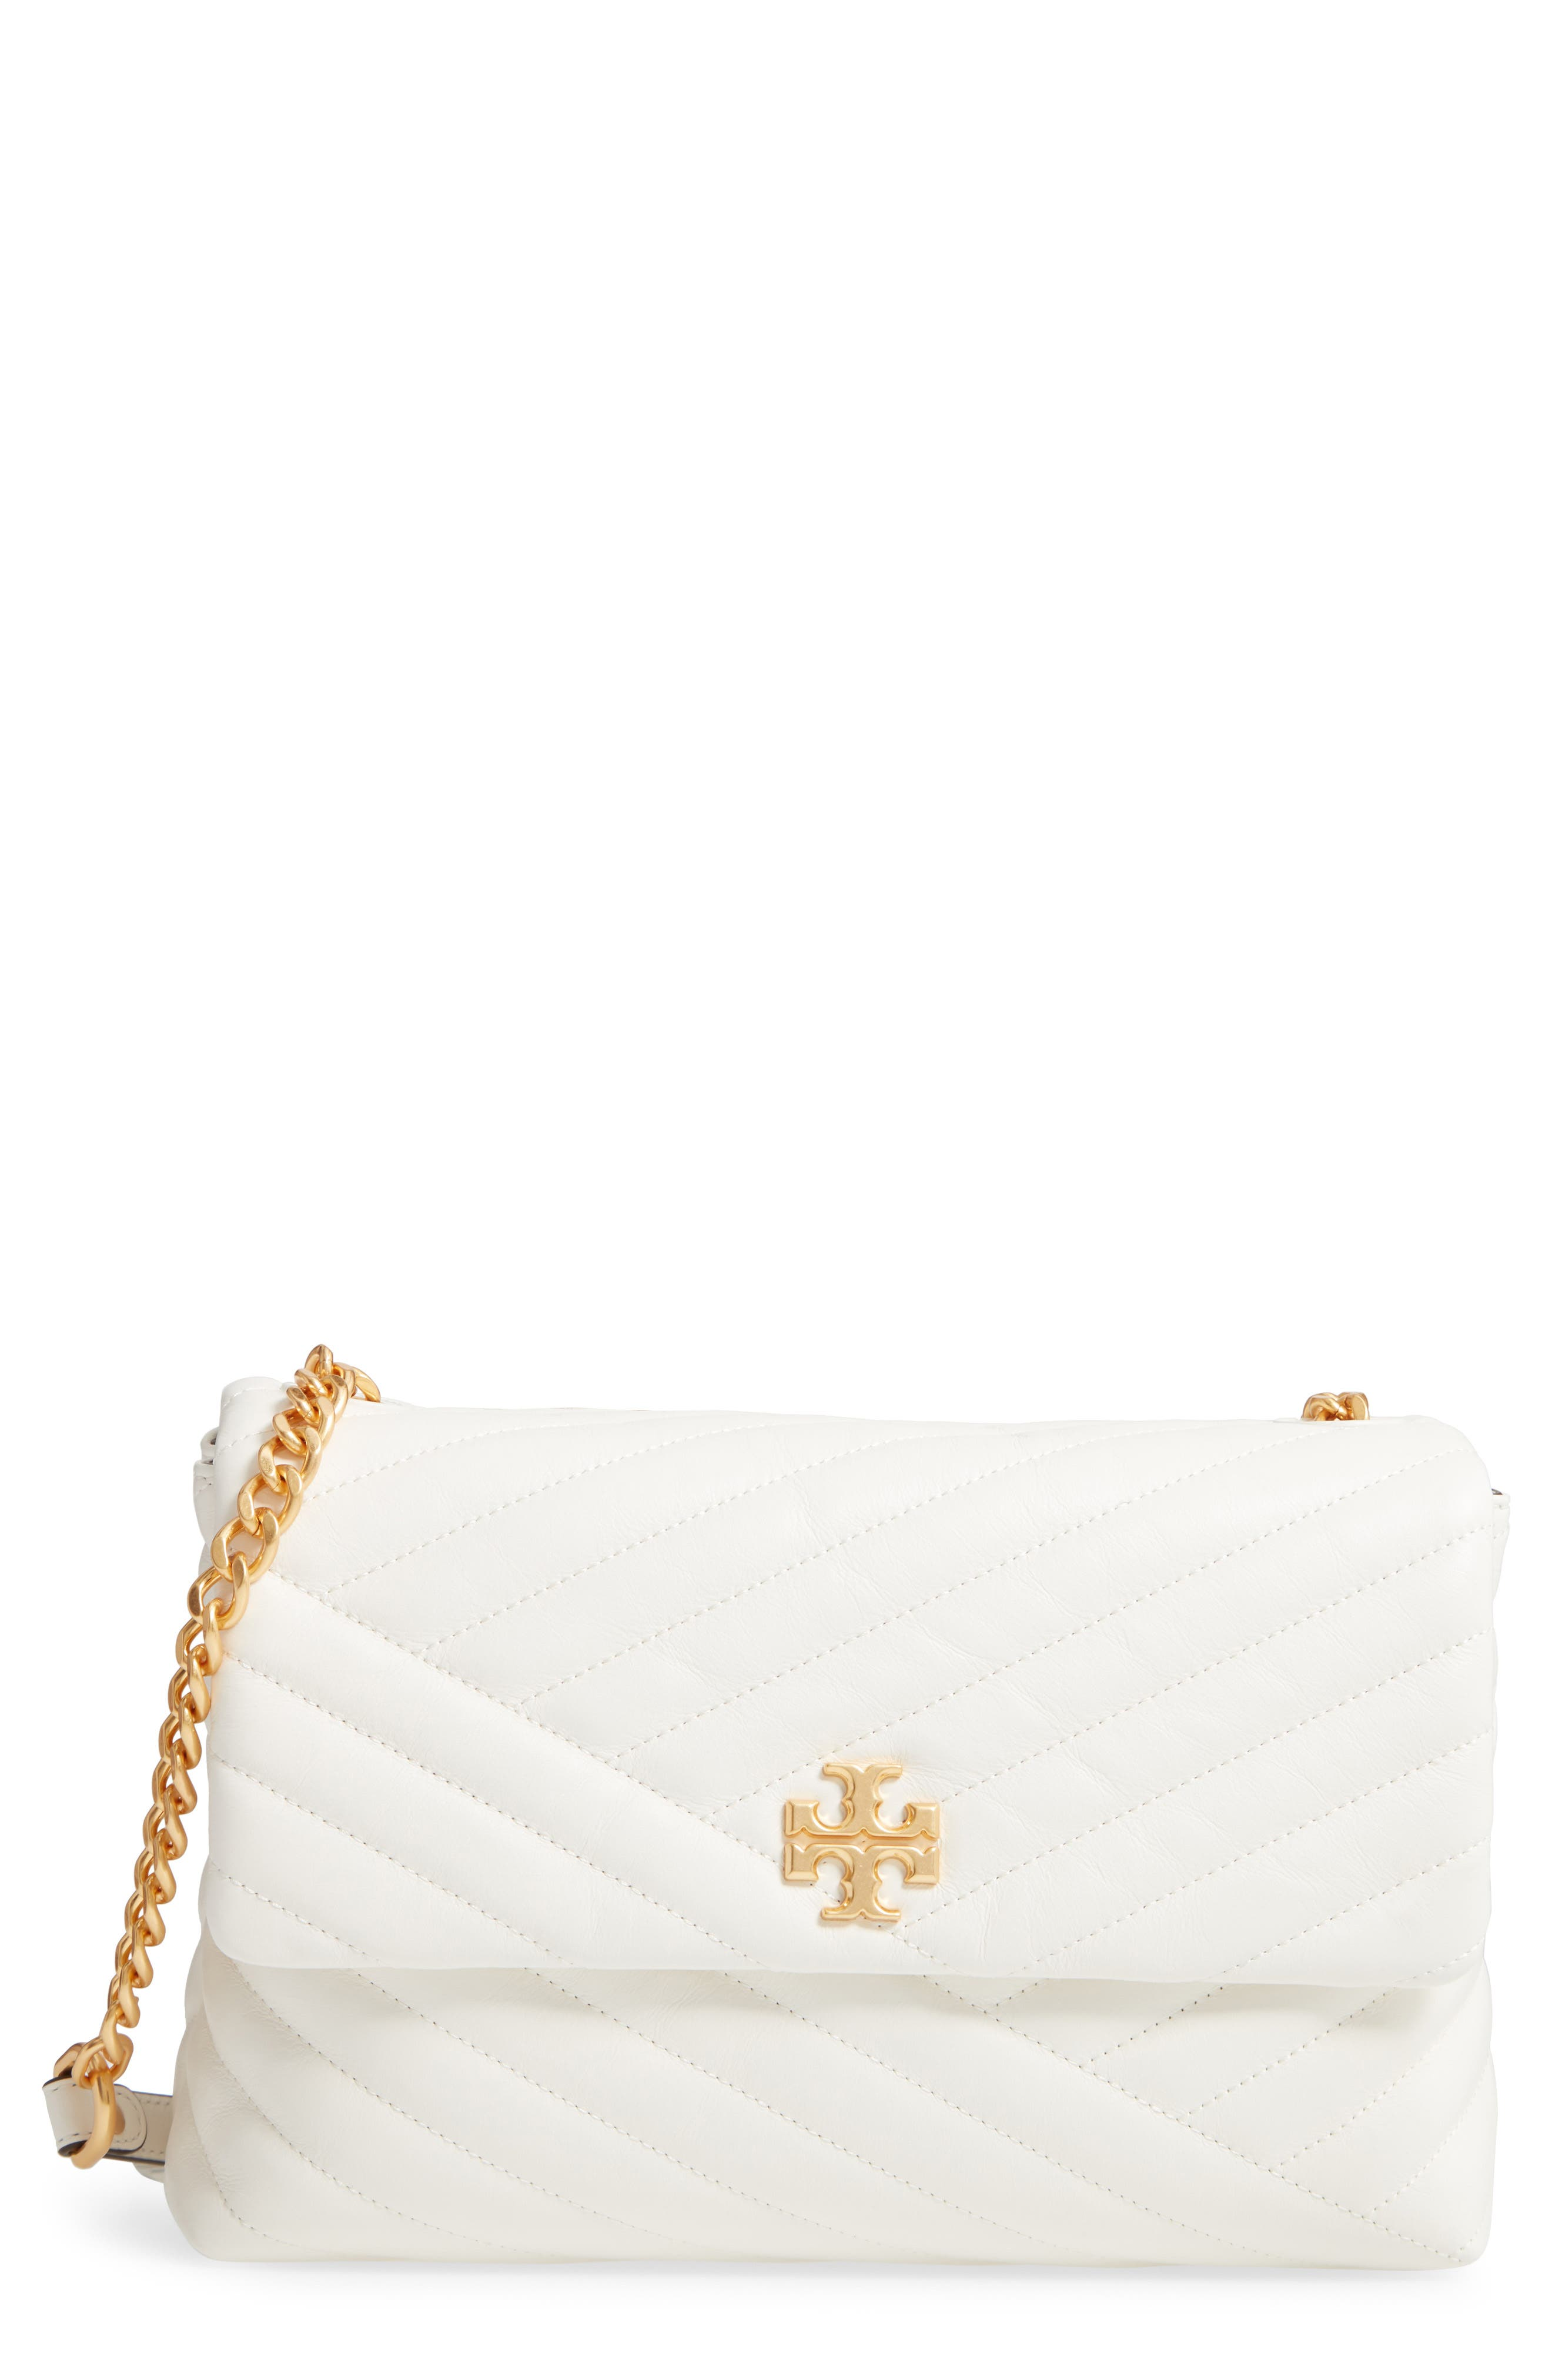 TORY BURCH, Kira Chevron Quilted Leather Shoulder Bag, Main thumbnail 1, color, NEW IVORY